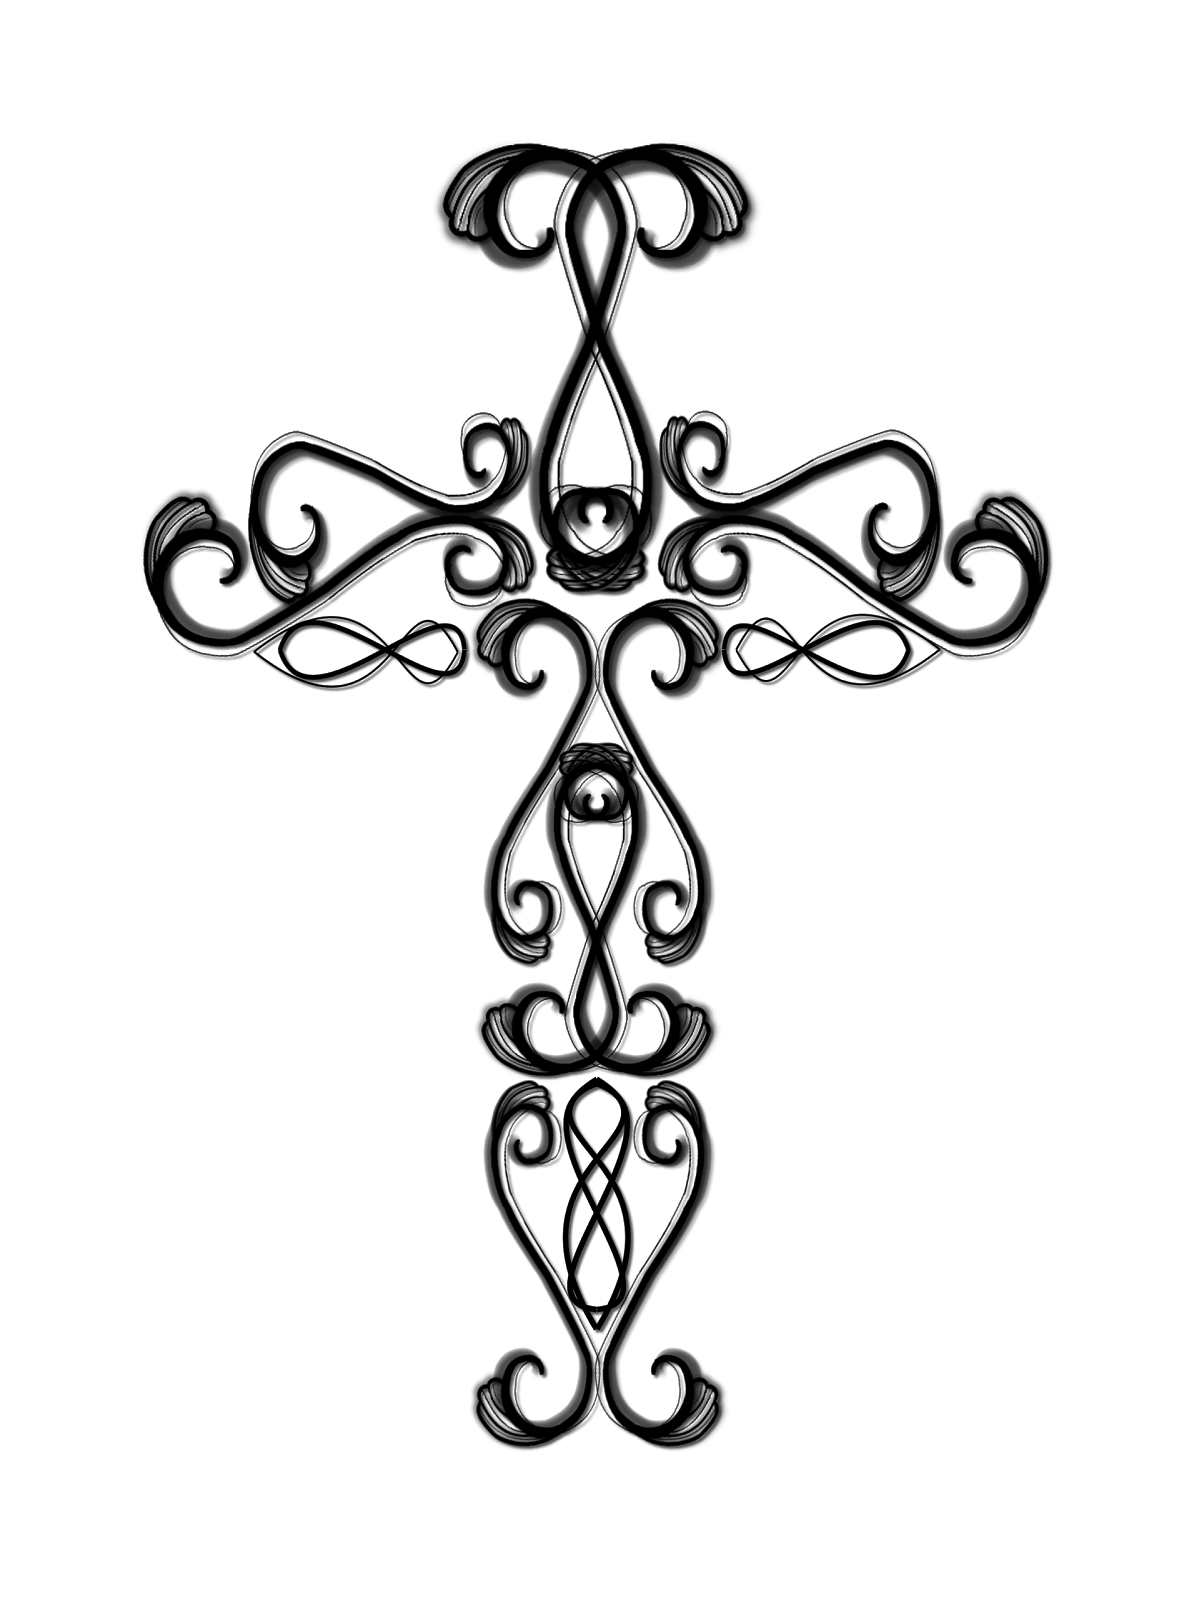 Free Pictures Of Crosses With Ribbons Download Free Clip